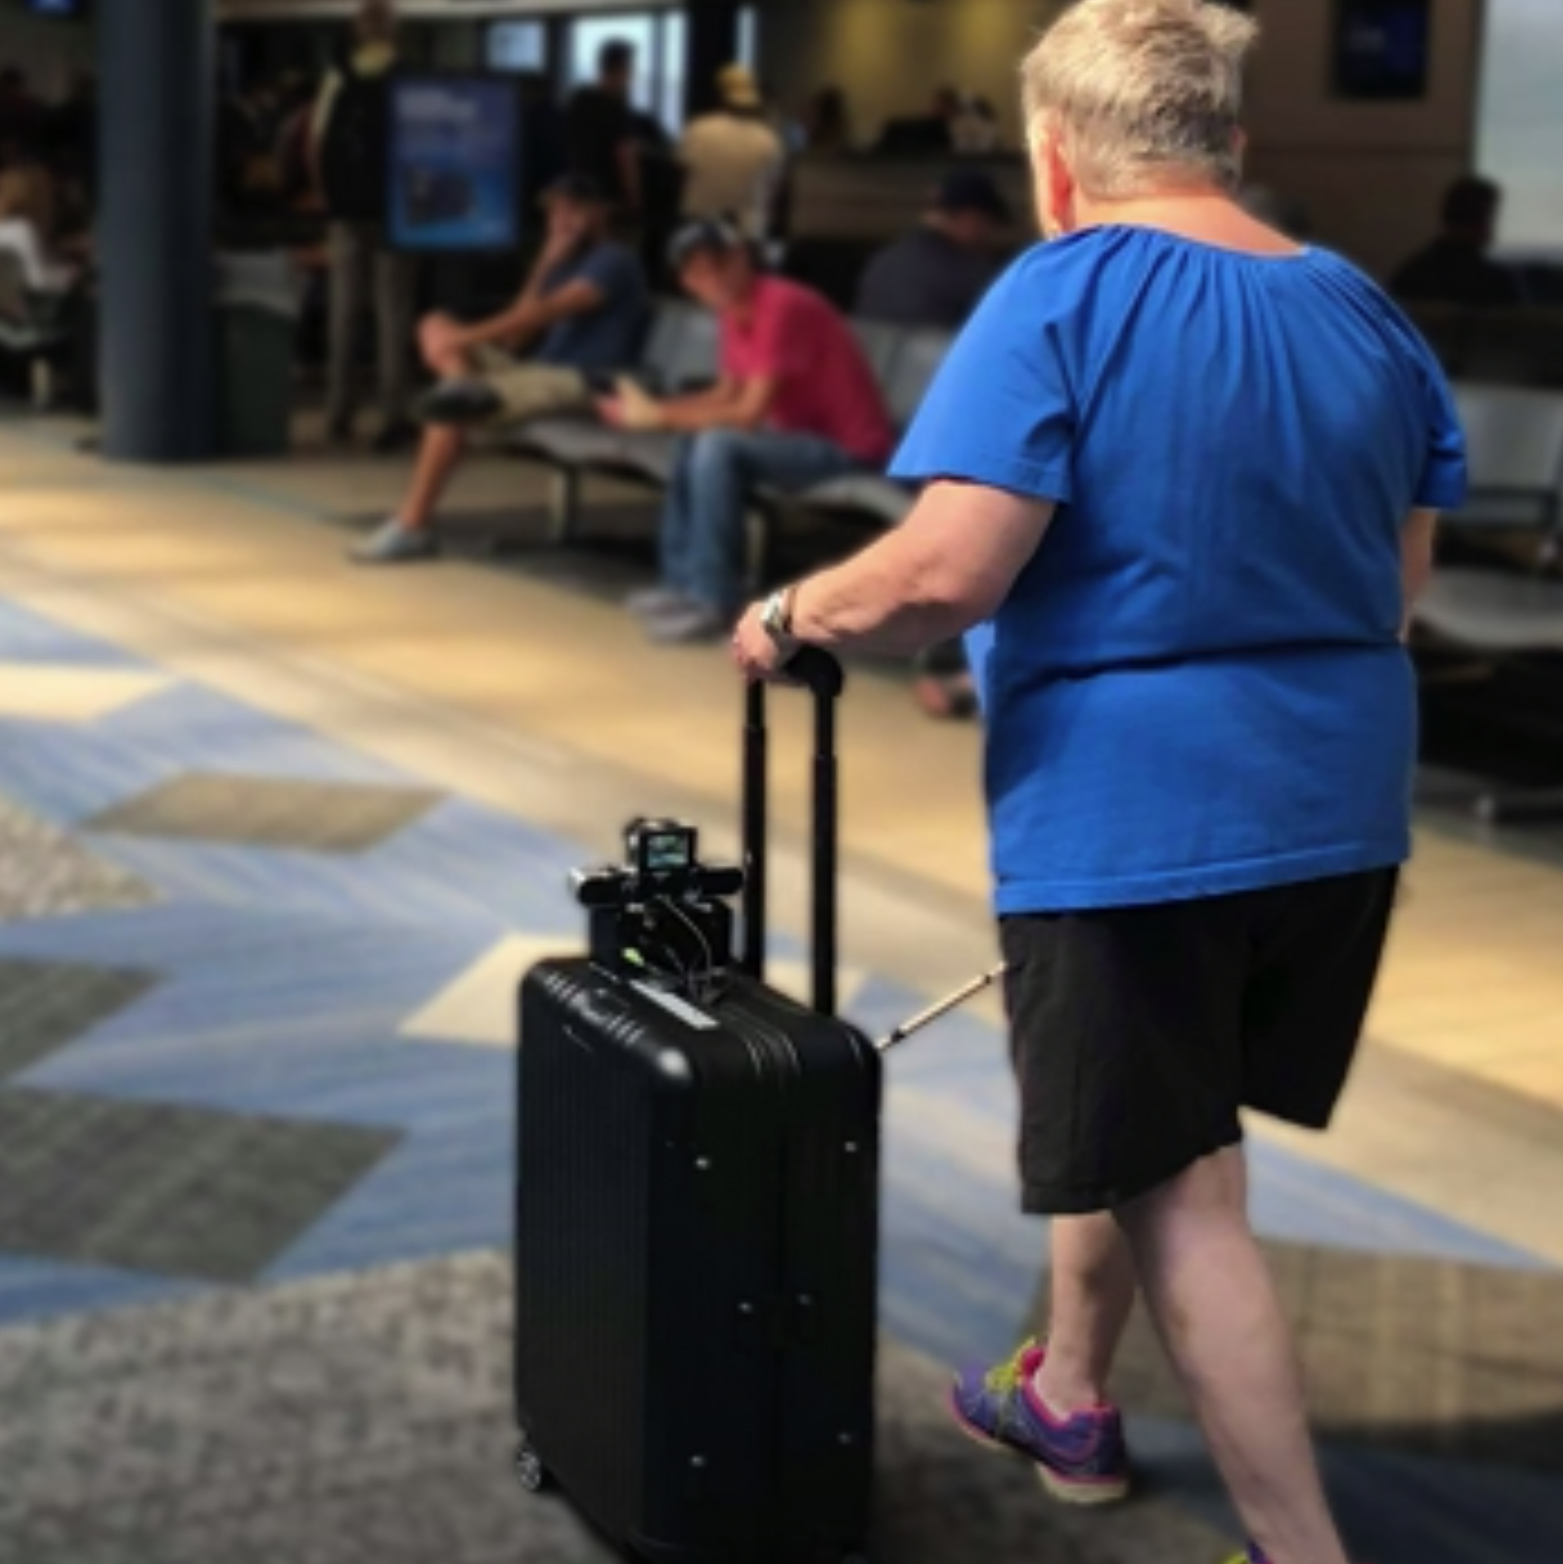 Blind woman with suitcase in airport